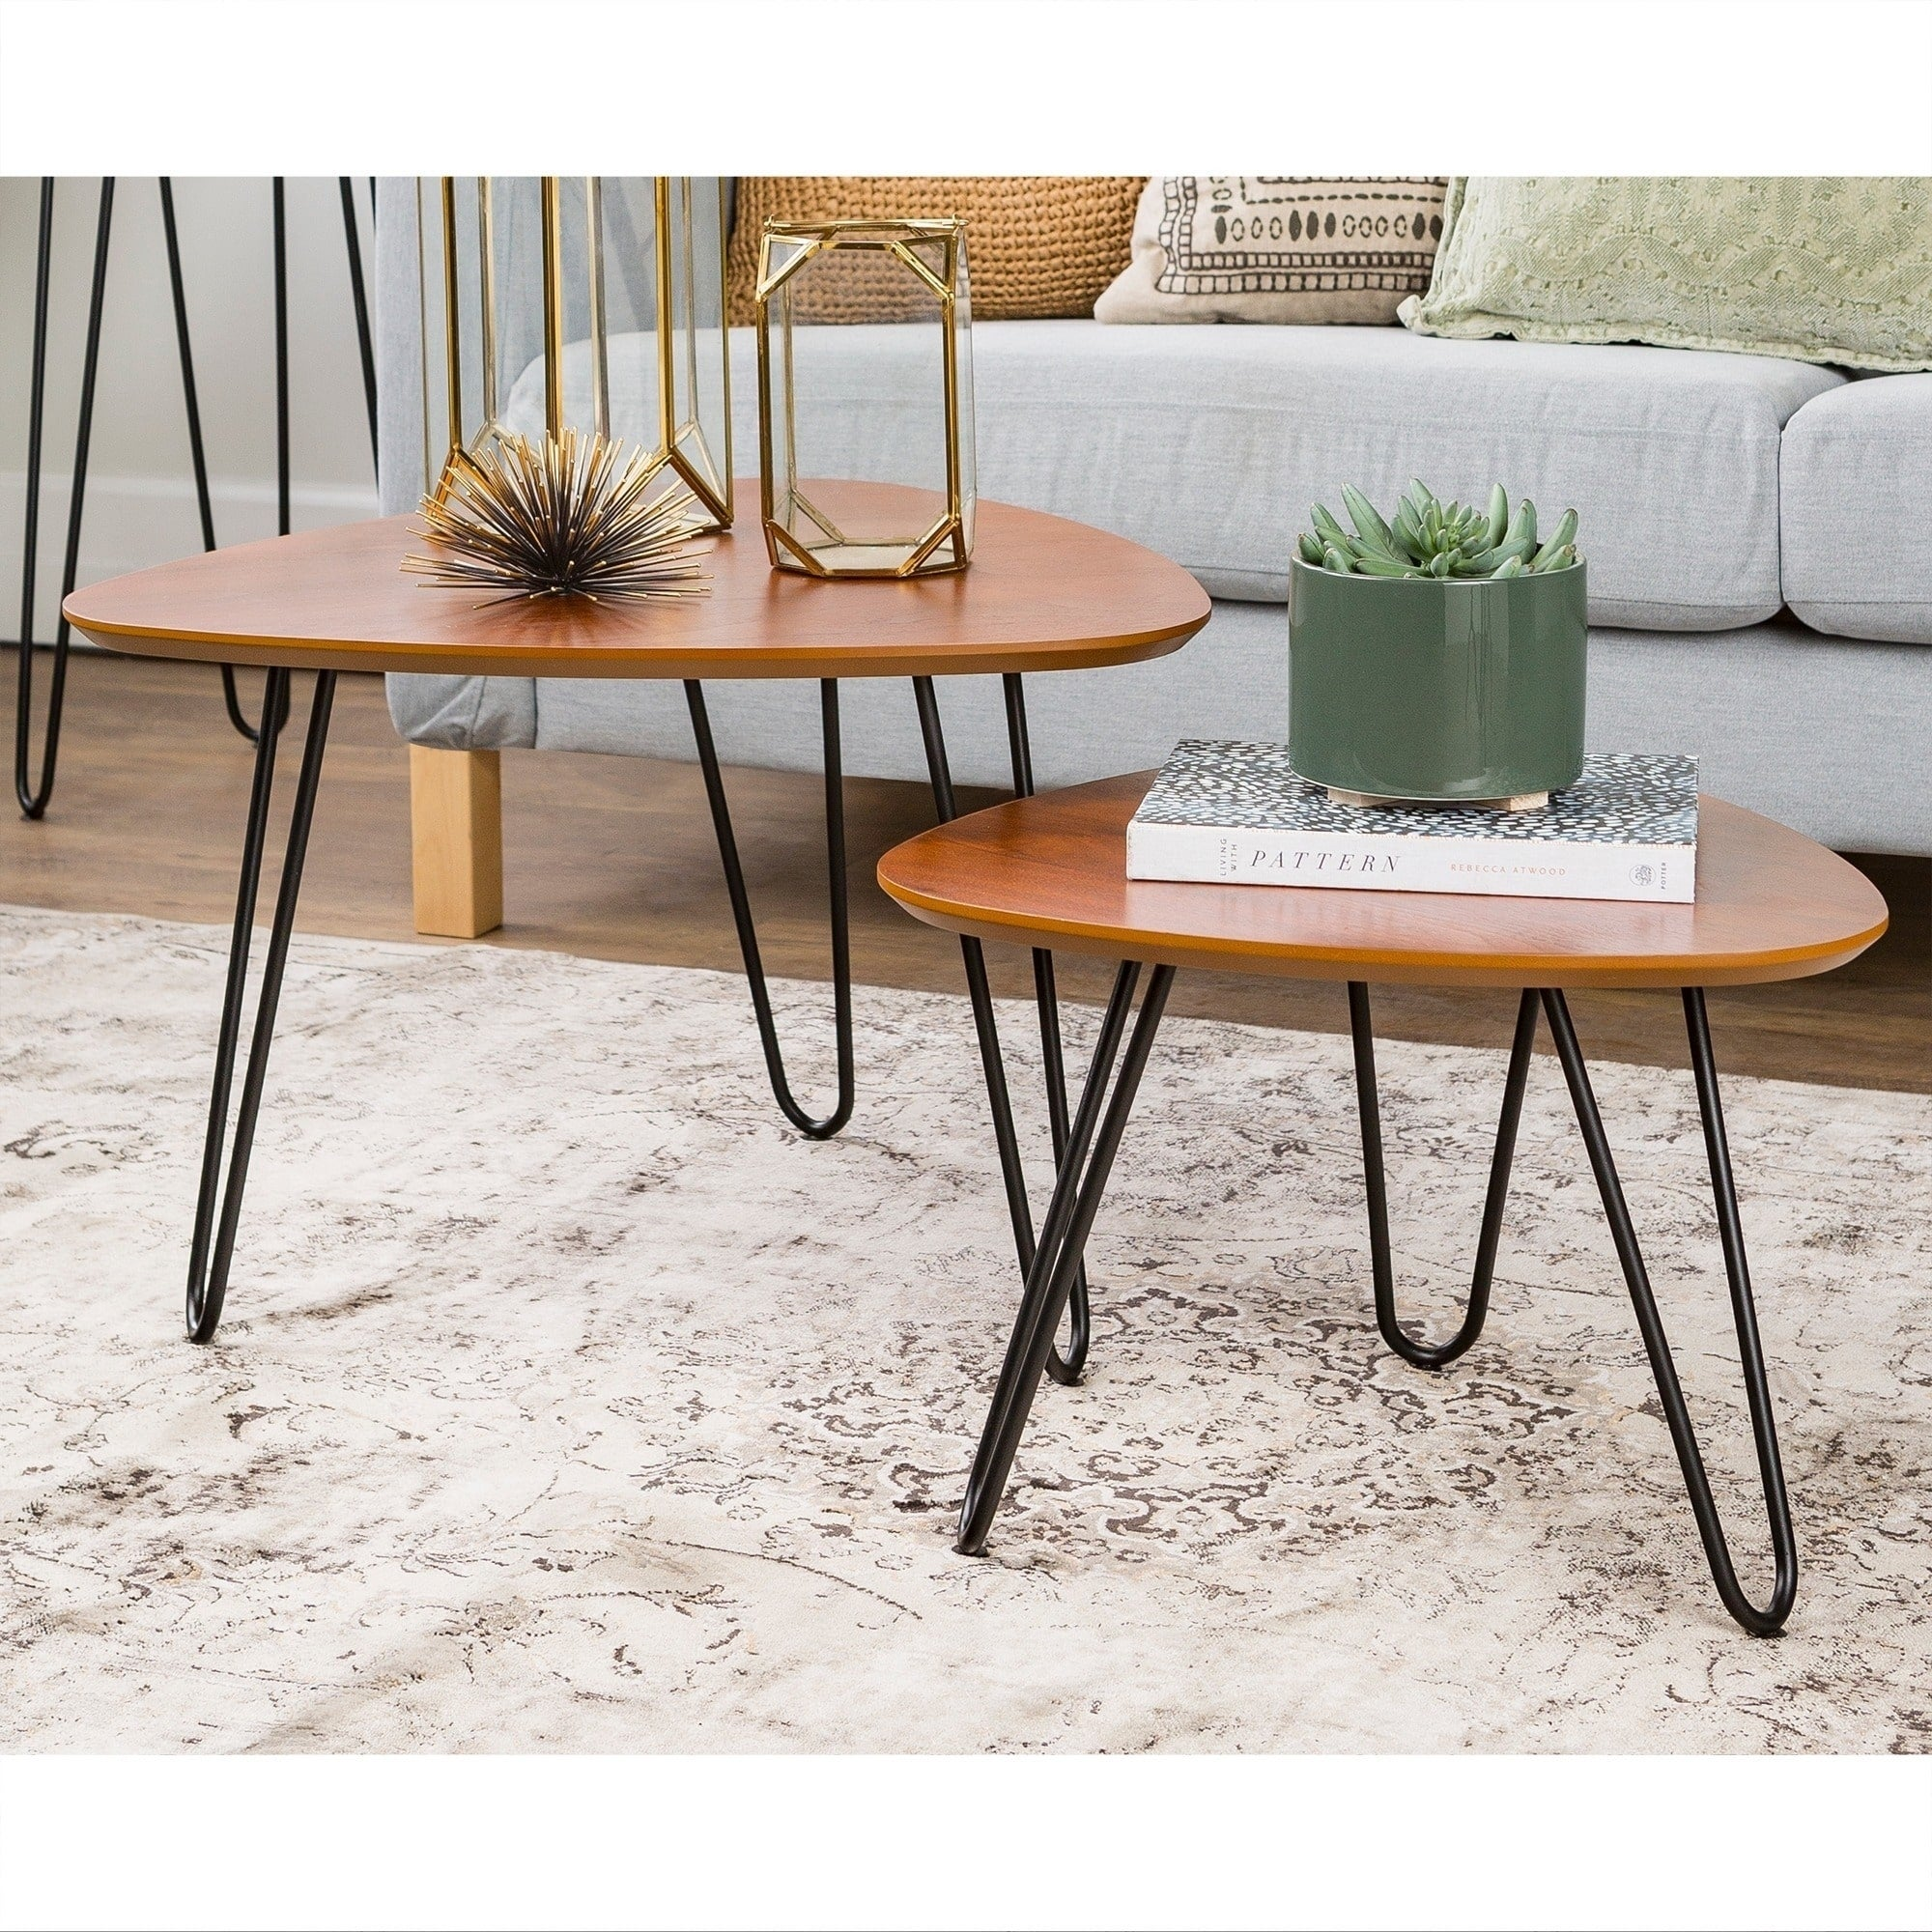 Round Wood Hairpin Coffee Table: Shop Hairpin Leg Wood Nesting Coffee Table Set